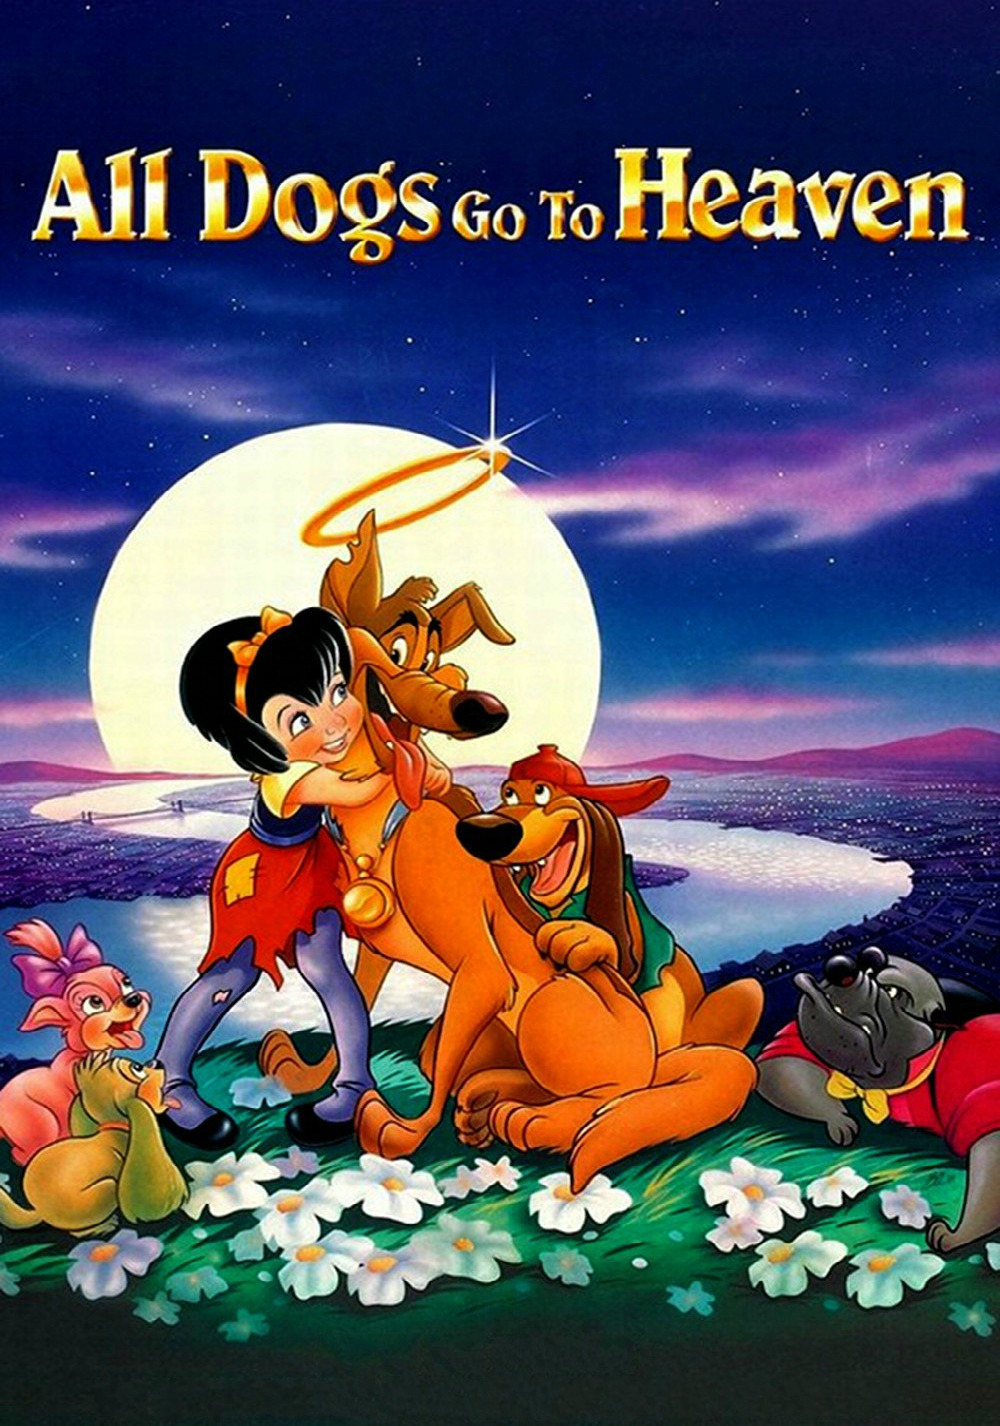 All Dogs Go to Heaven (1989 film) Credits